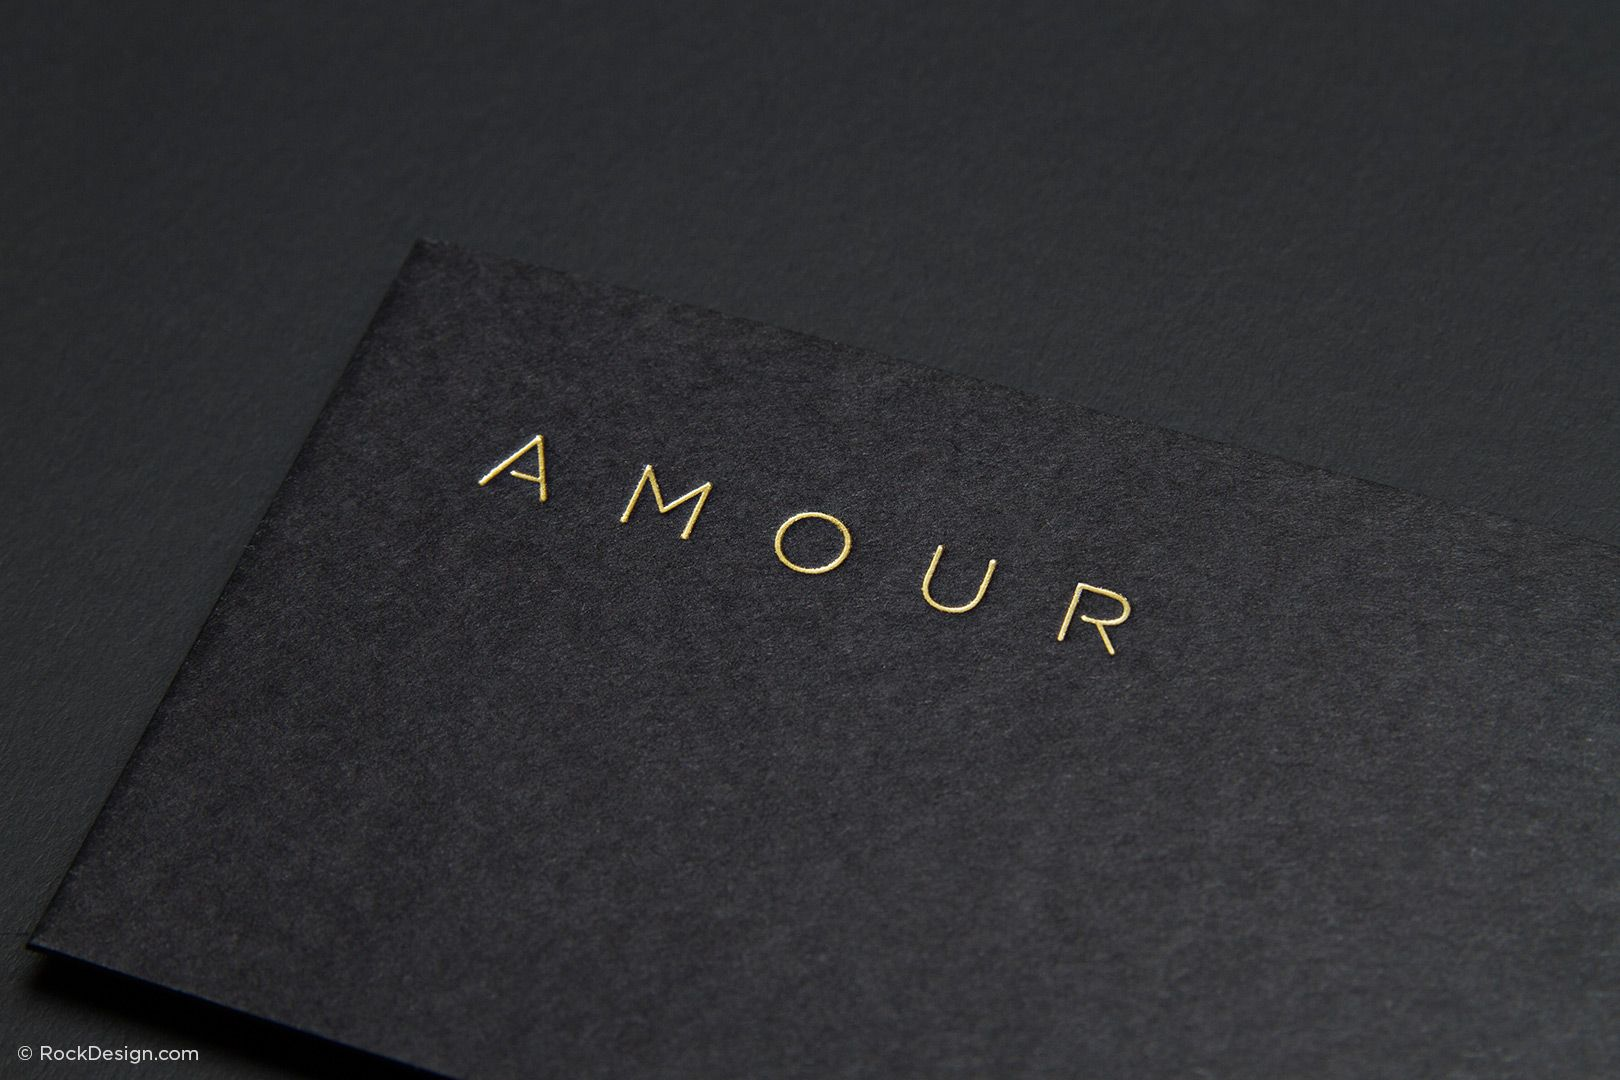 Fancy unique black business card design template amour print business cards online with our free templates using gold foil silver foil more our template is the perfect luxury card reheart Gallery